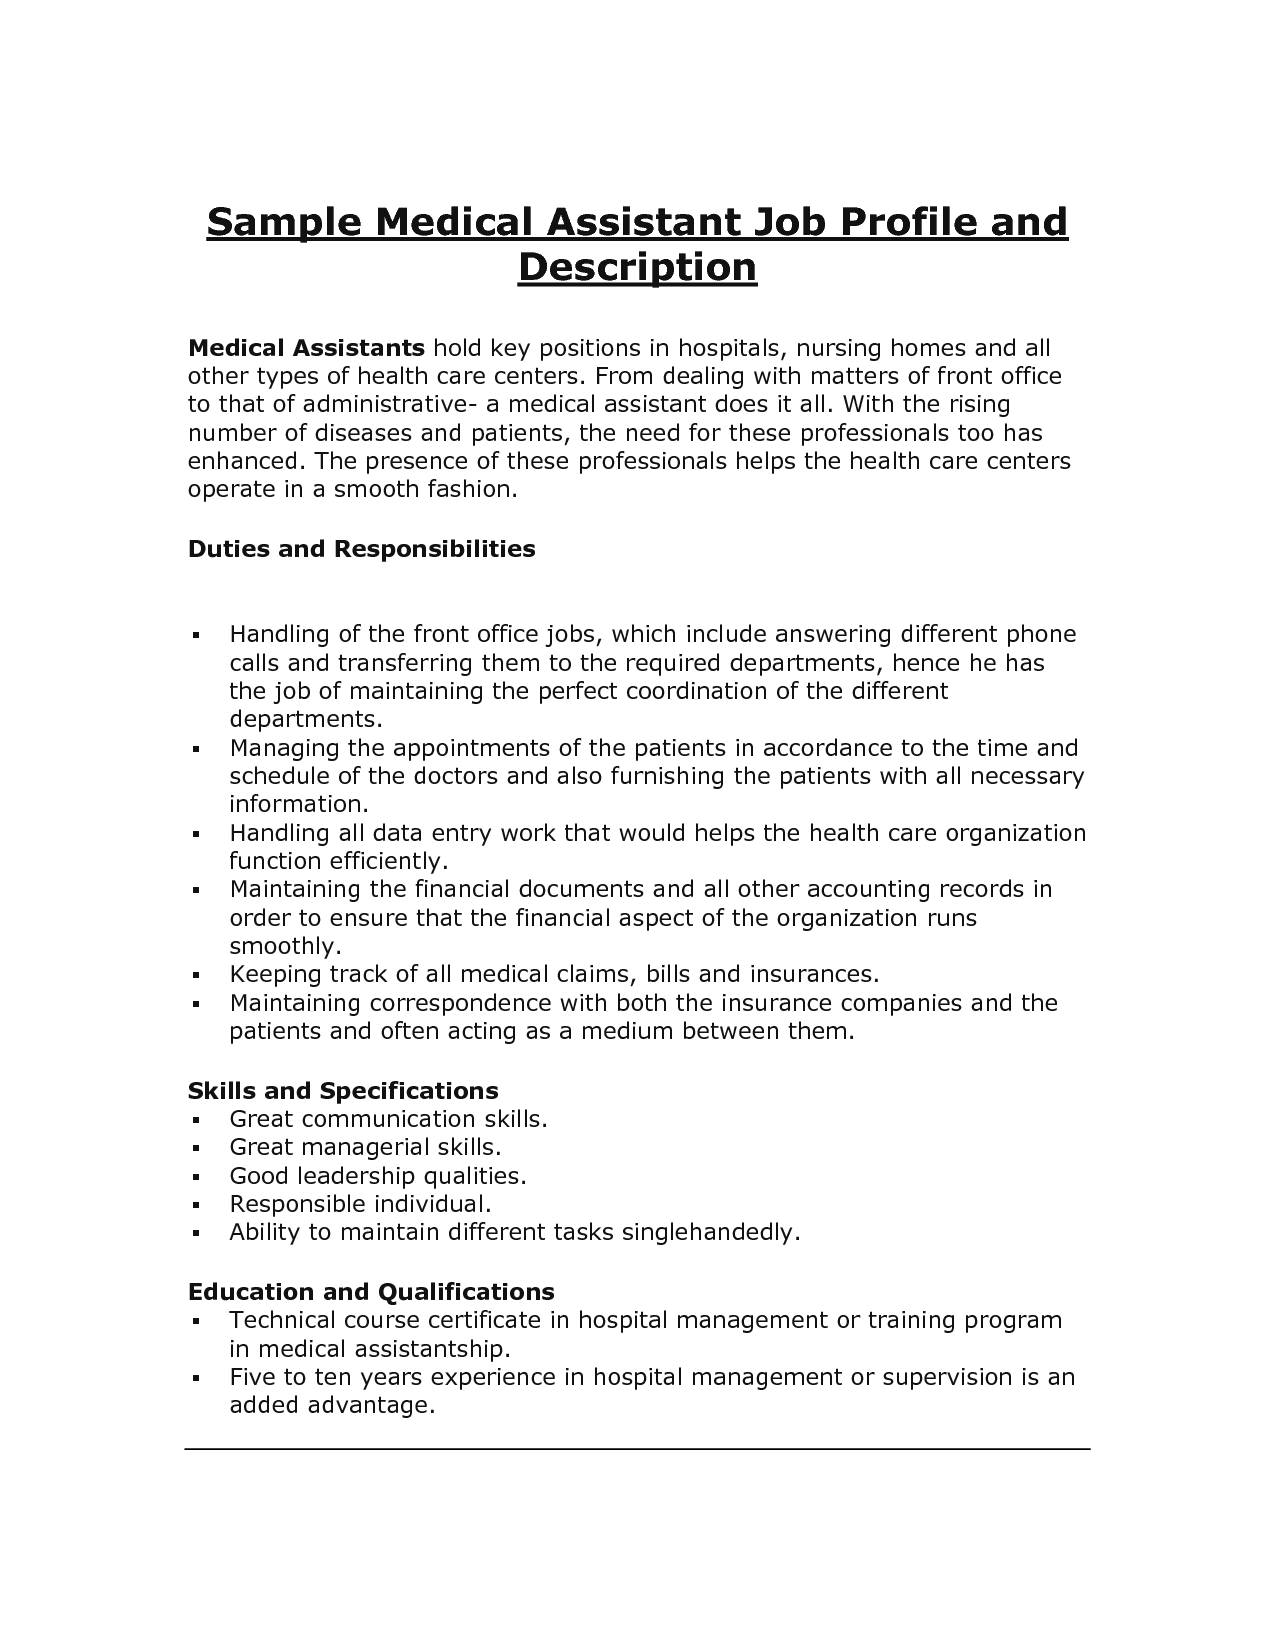 sample Medical Assistant Job Description duties and responsibilities